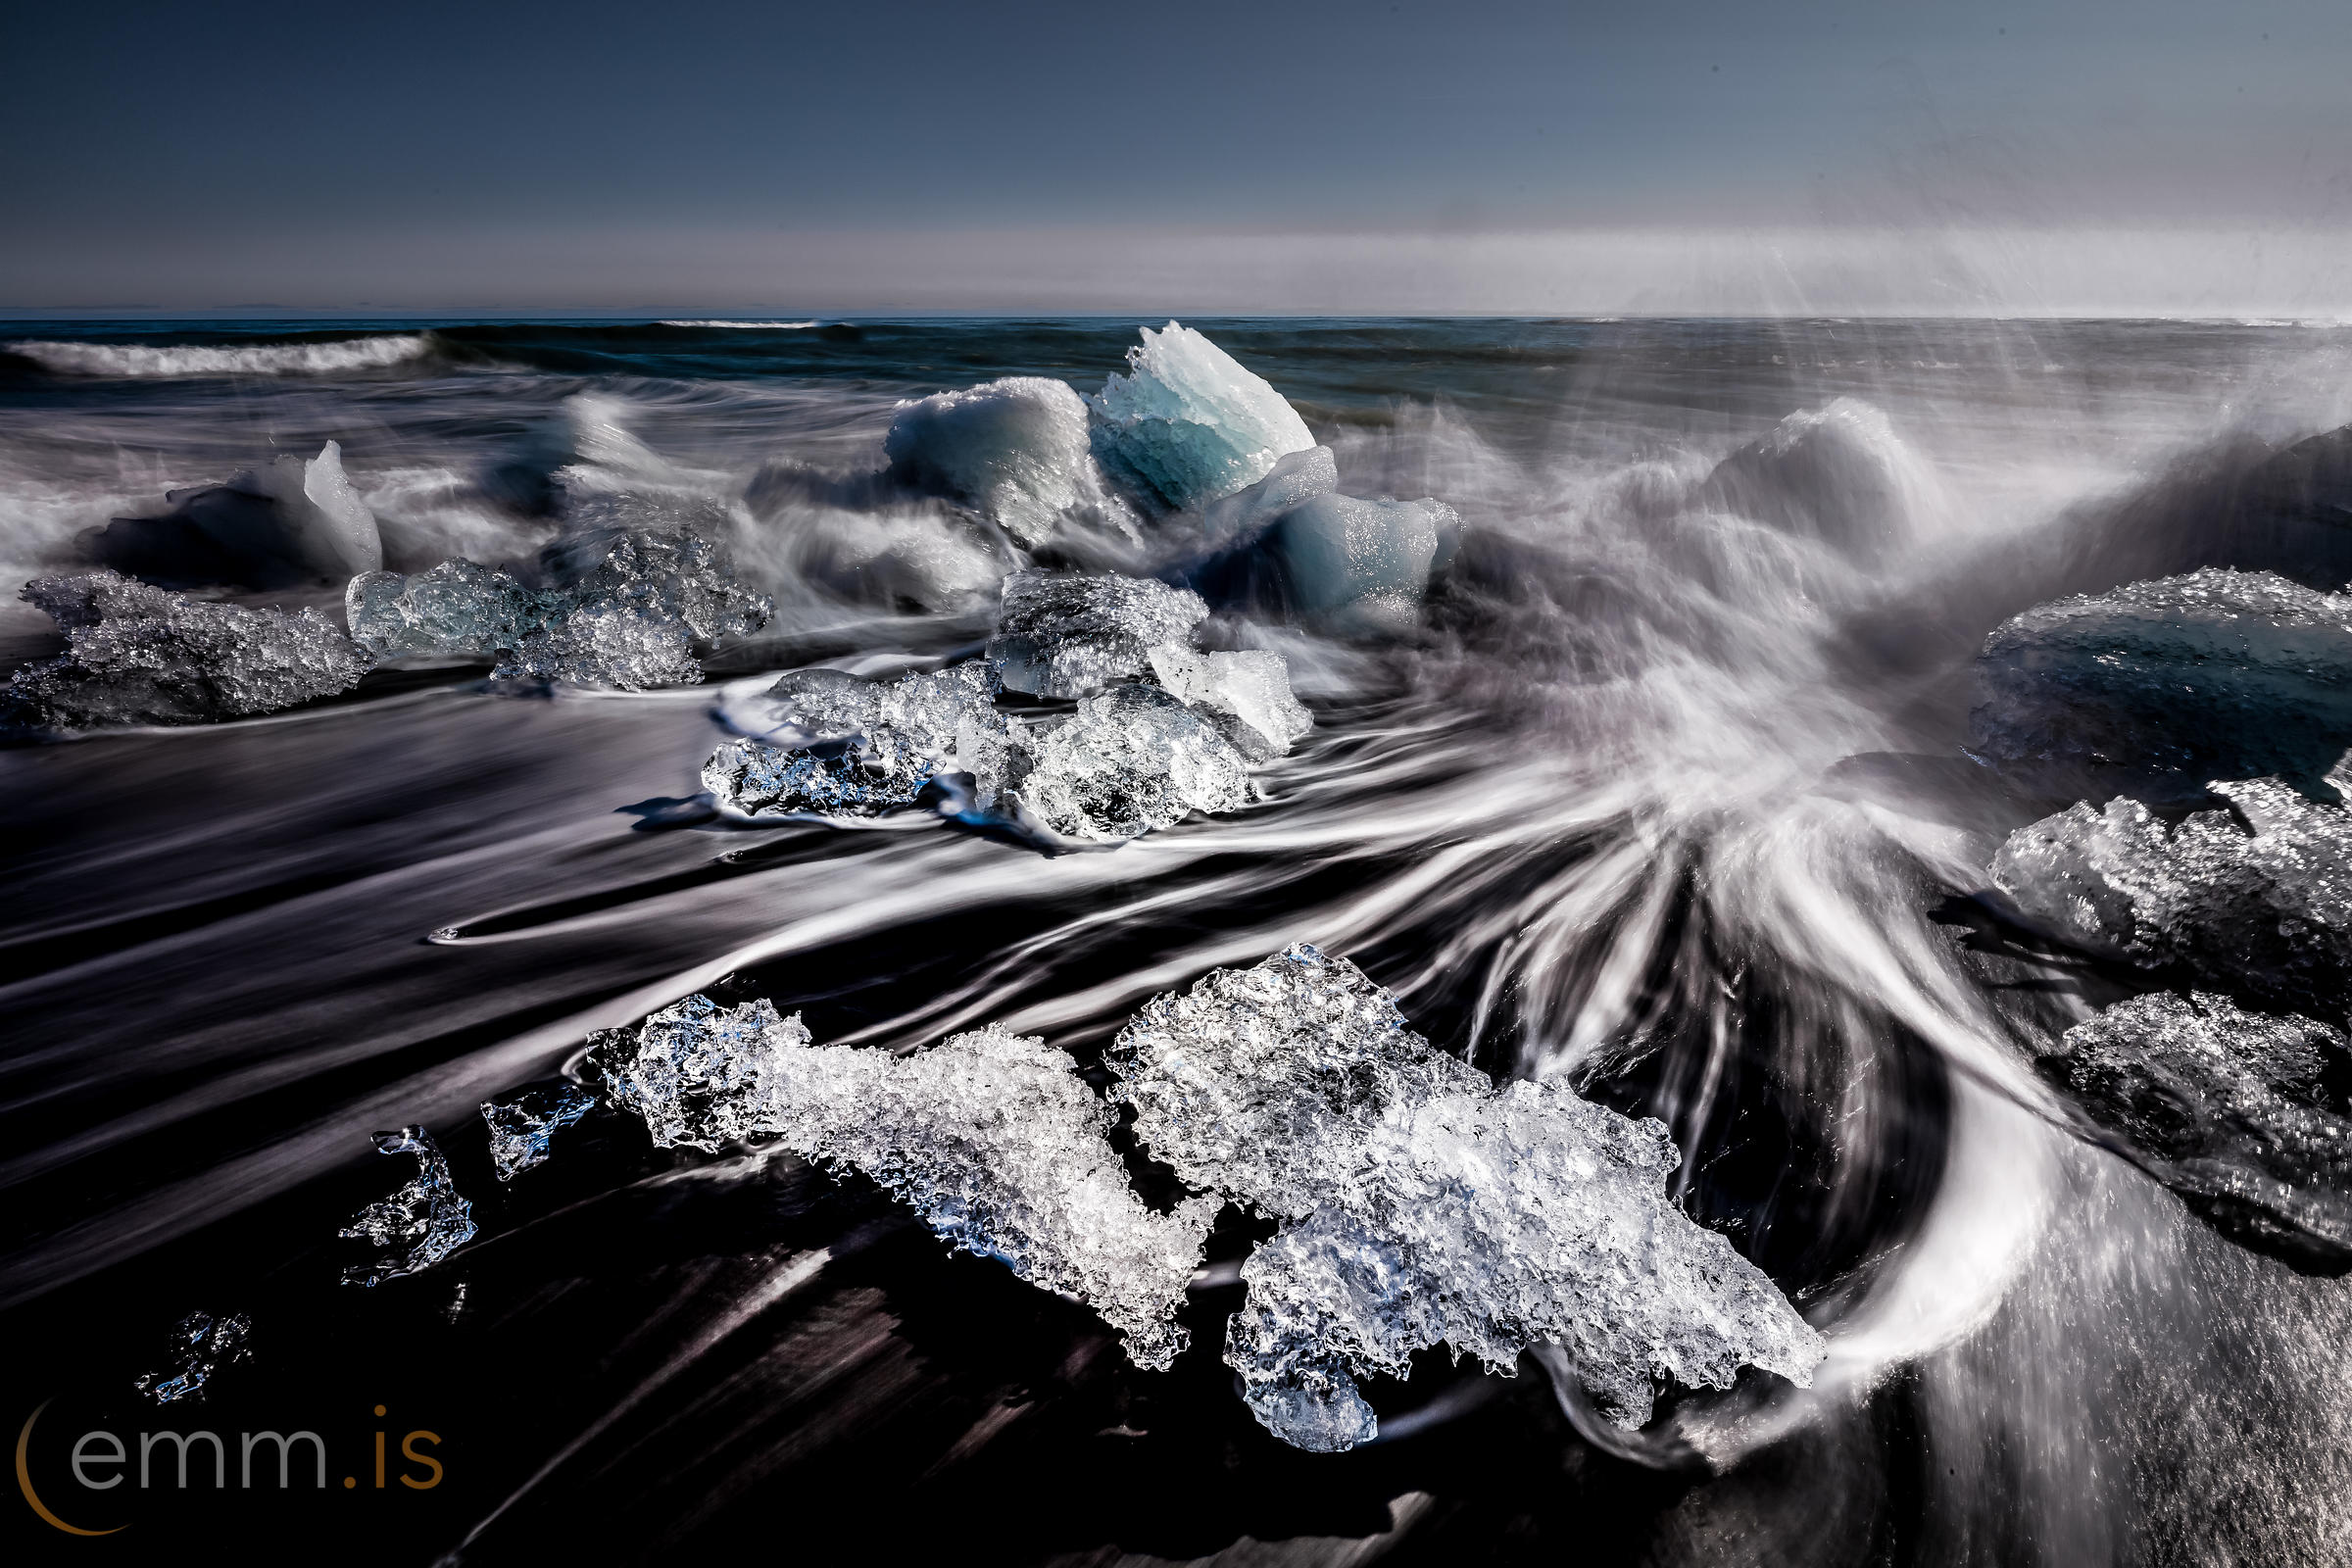 Icebraker_by_Jokulsarlon_in_Iceland_emm.is